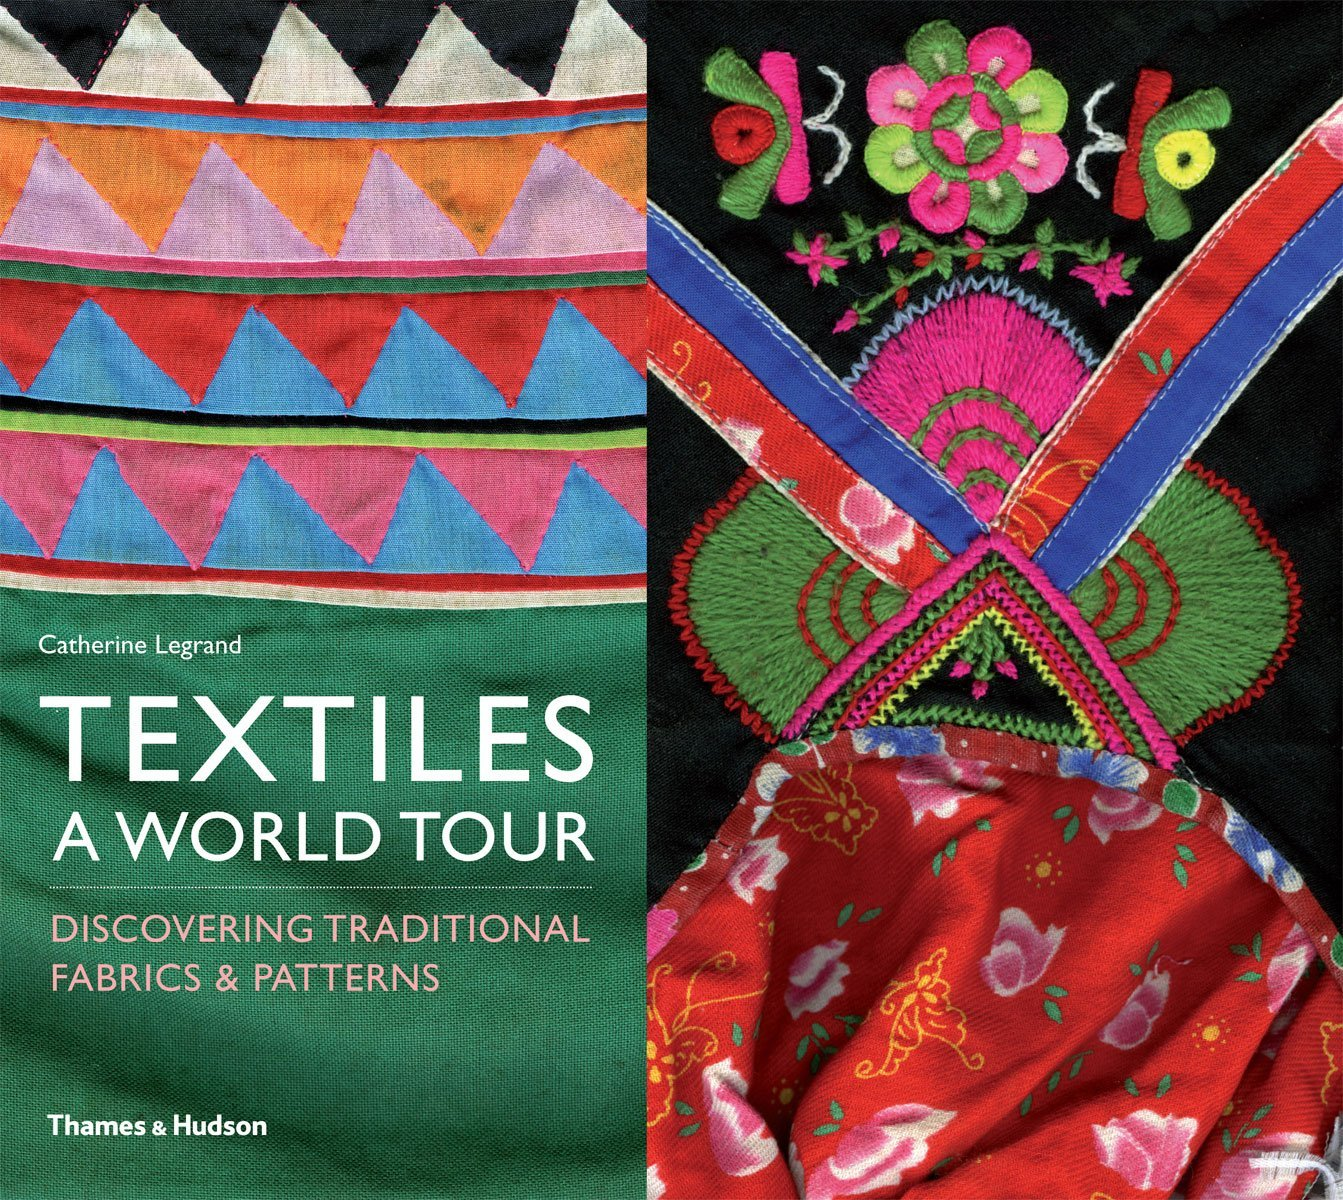 Textiles A Word Tour - Discovering Traditional Frabrics y Patterns - $26.000